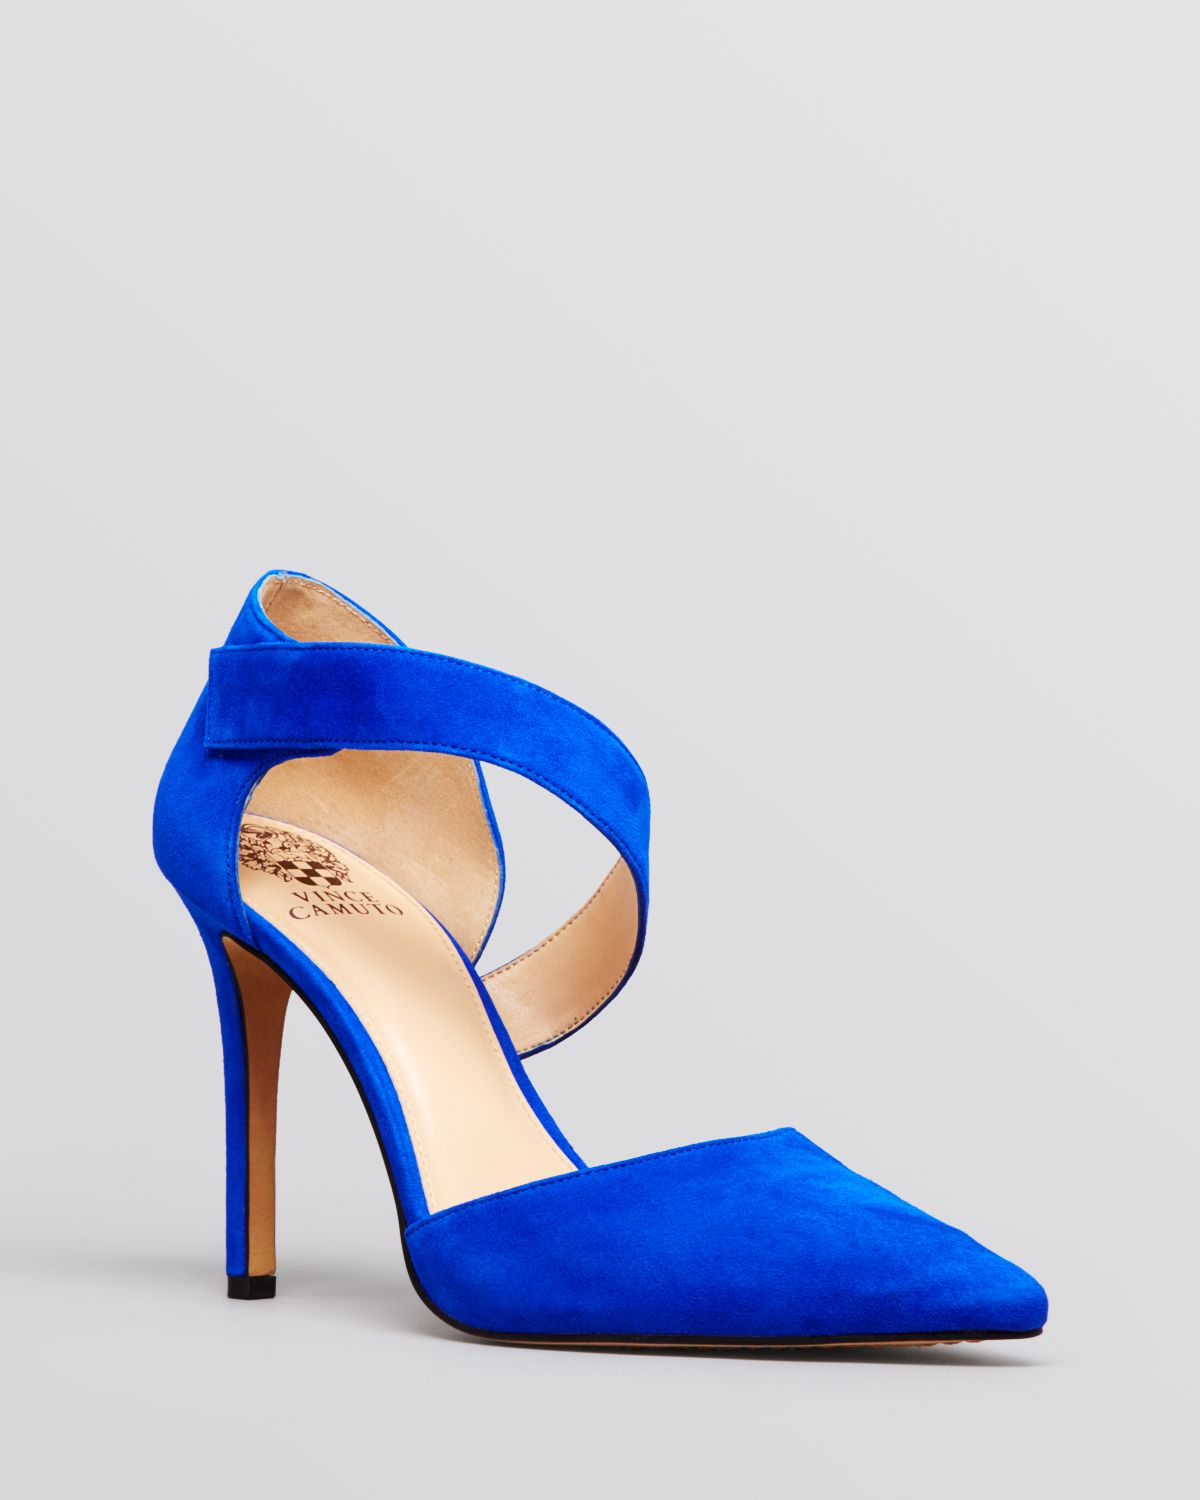 c034b0edd Vince Camuto Pointed Toe Pumps - Carlotte High Heel in Blue - Lyst